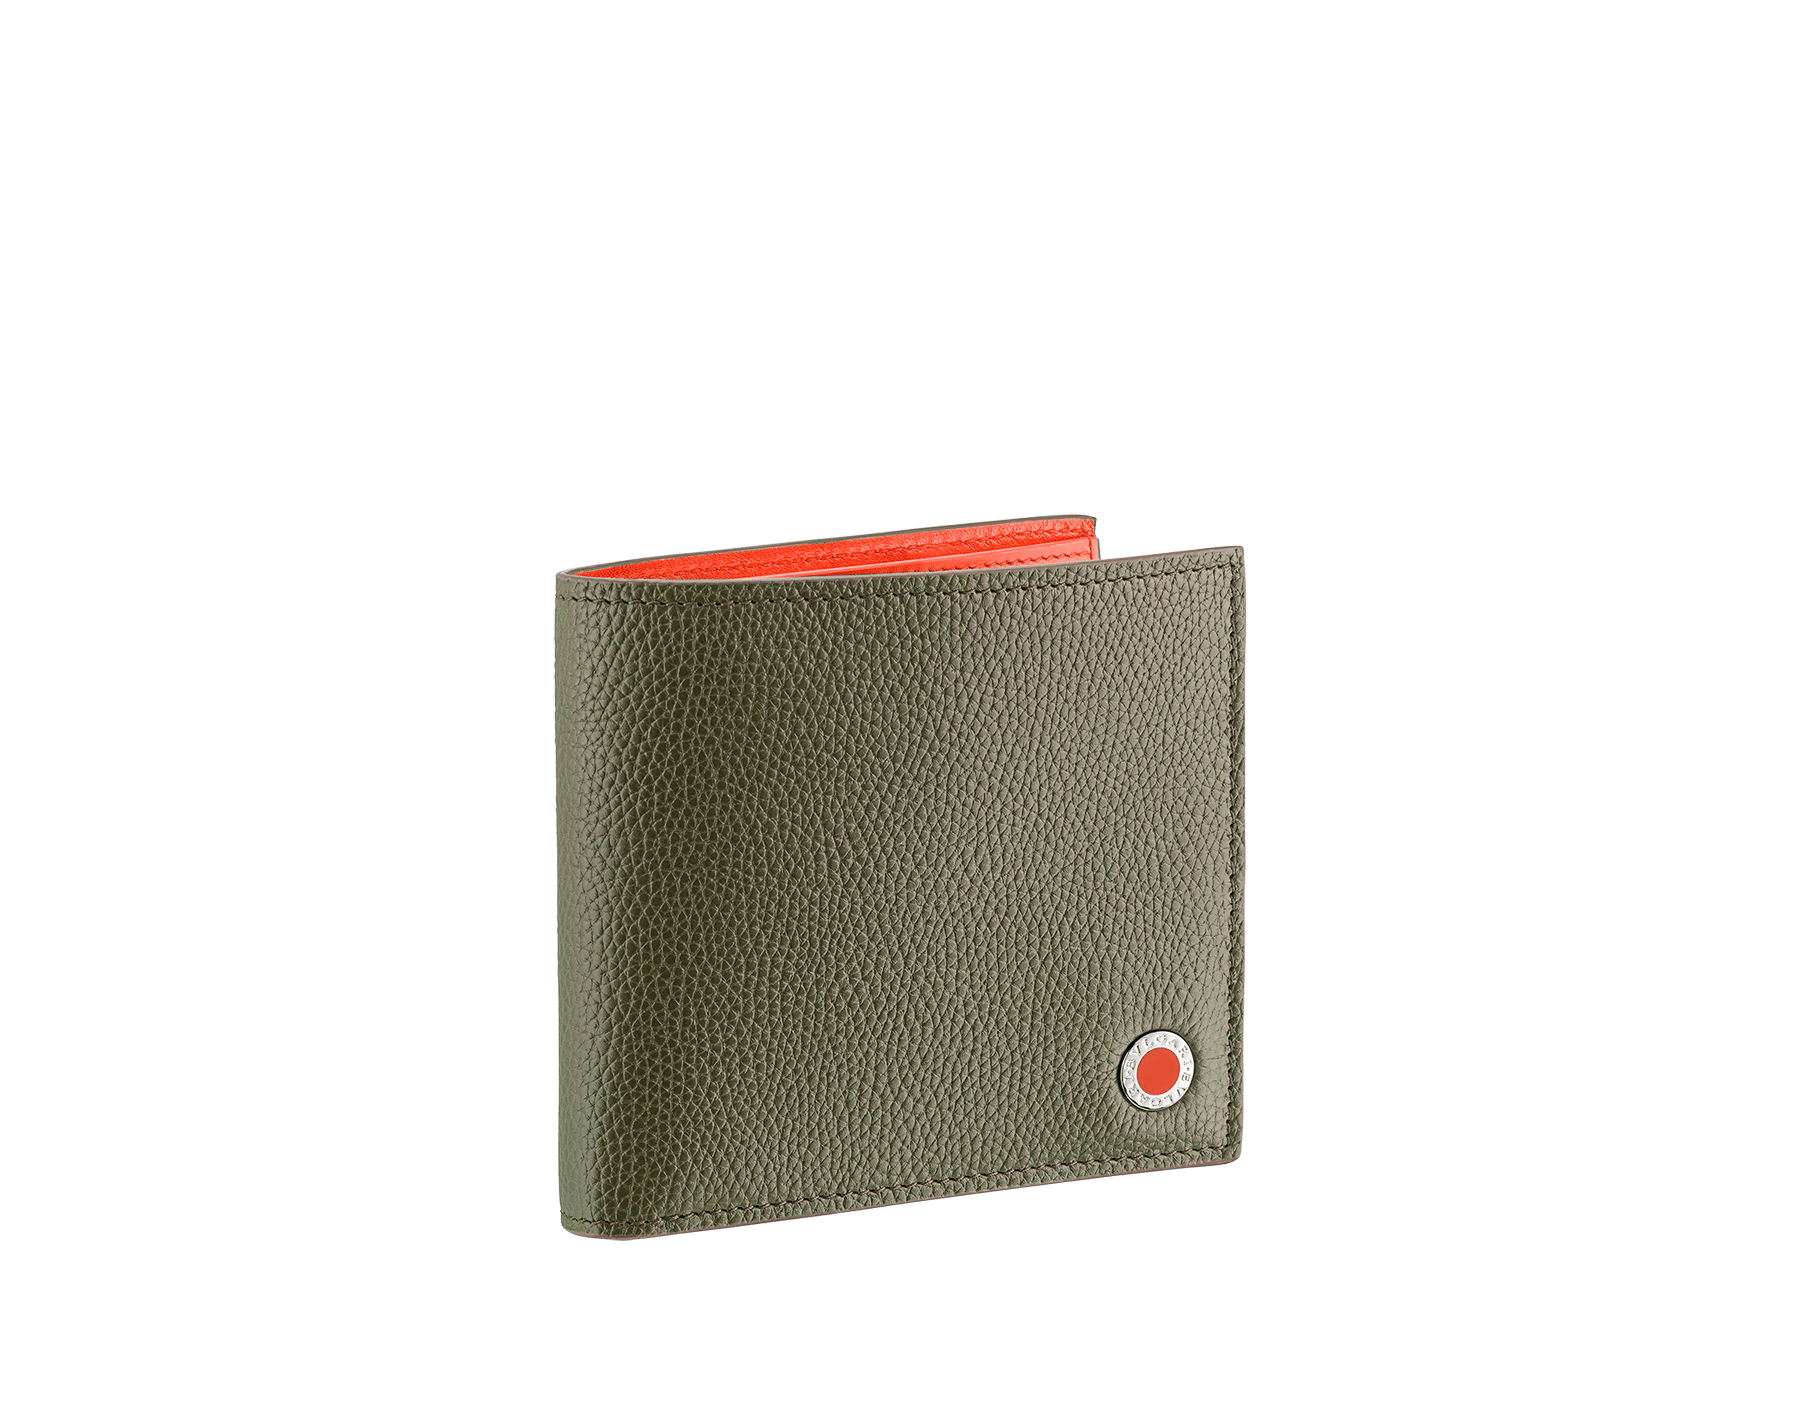 """BVLGARI BVLGARI"" compact wallet in mimetic jade soft full grain calf leather and fire amber calf leather. Iconic logo decoration in palladium plated brass coloured in fire amber enamel. BBM-WLT-ITAL-sgcl image 1"